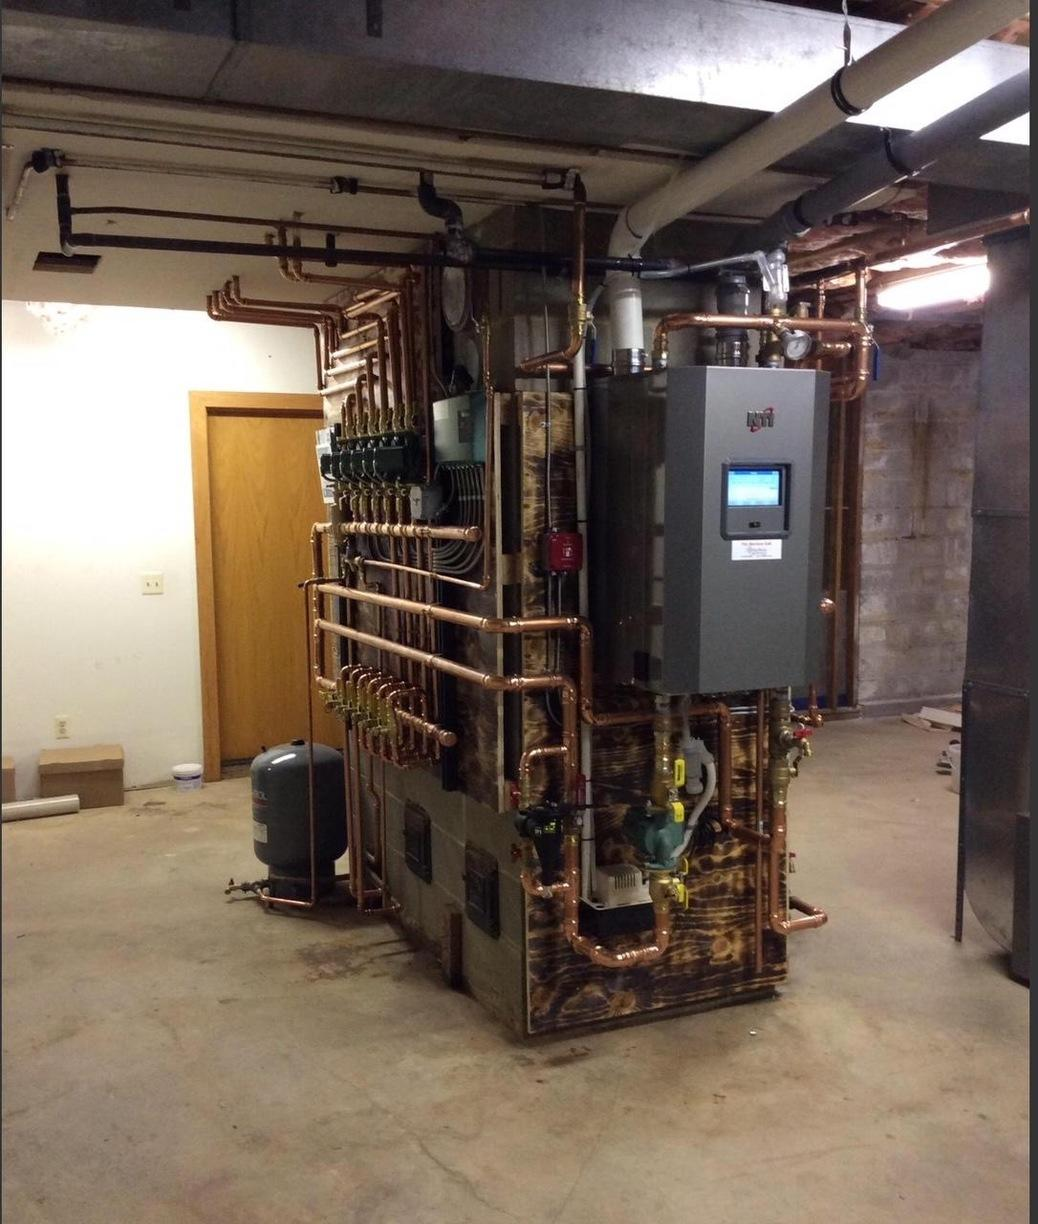 NTI Boiler Installation in Mendham, New Jersey - After Photo